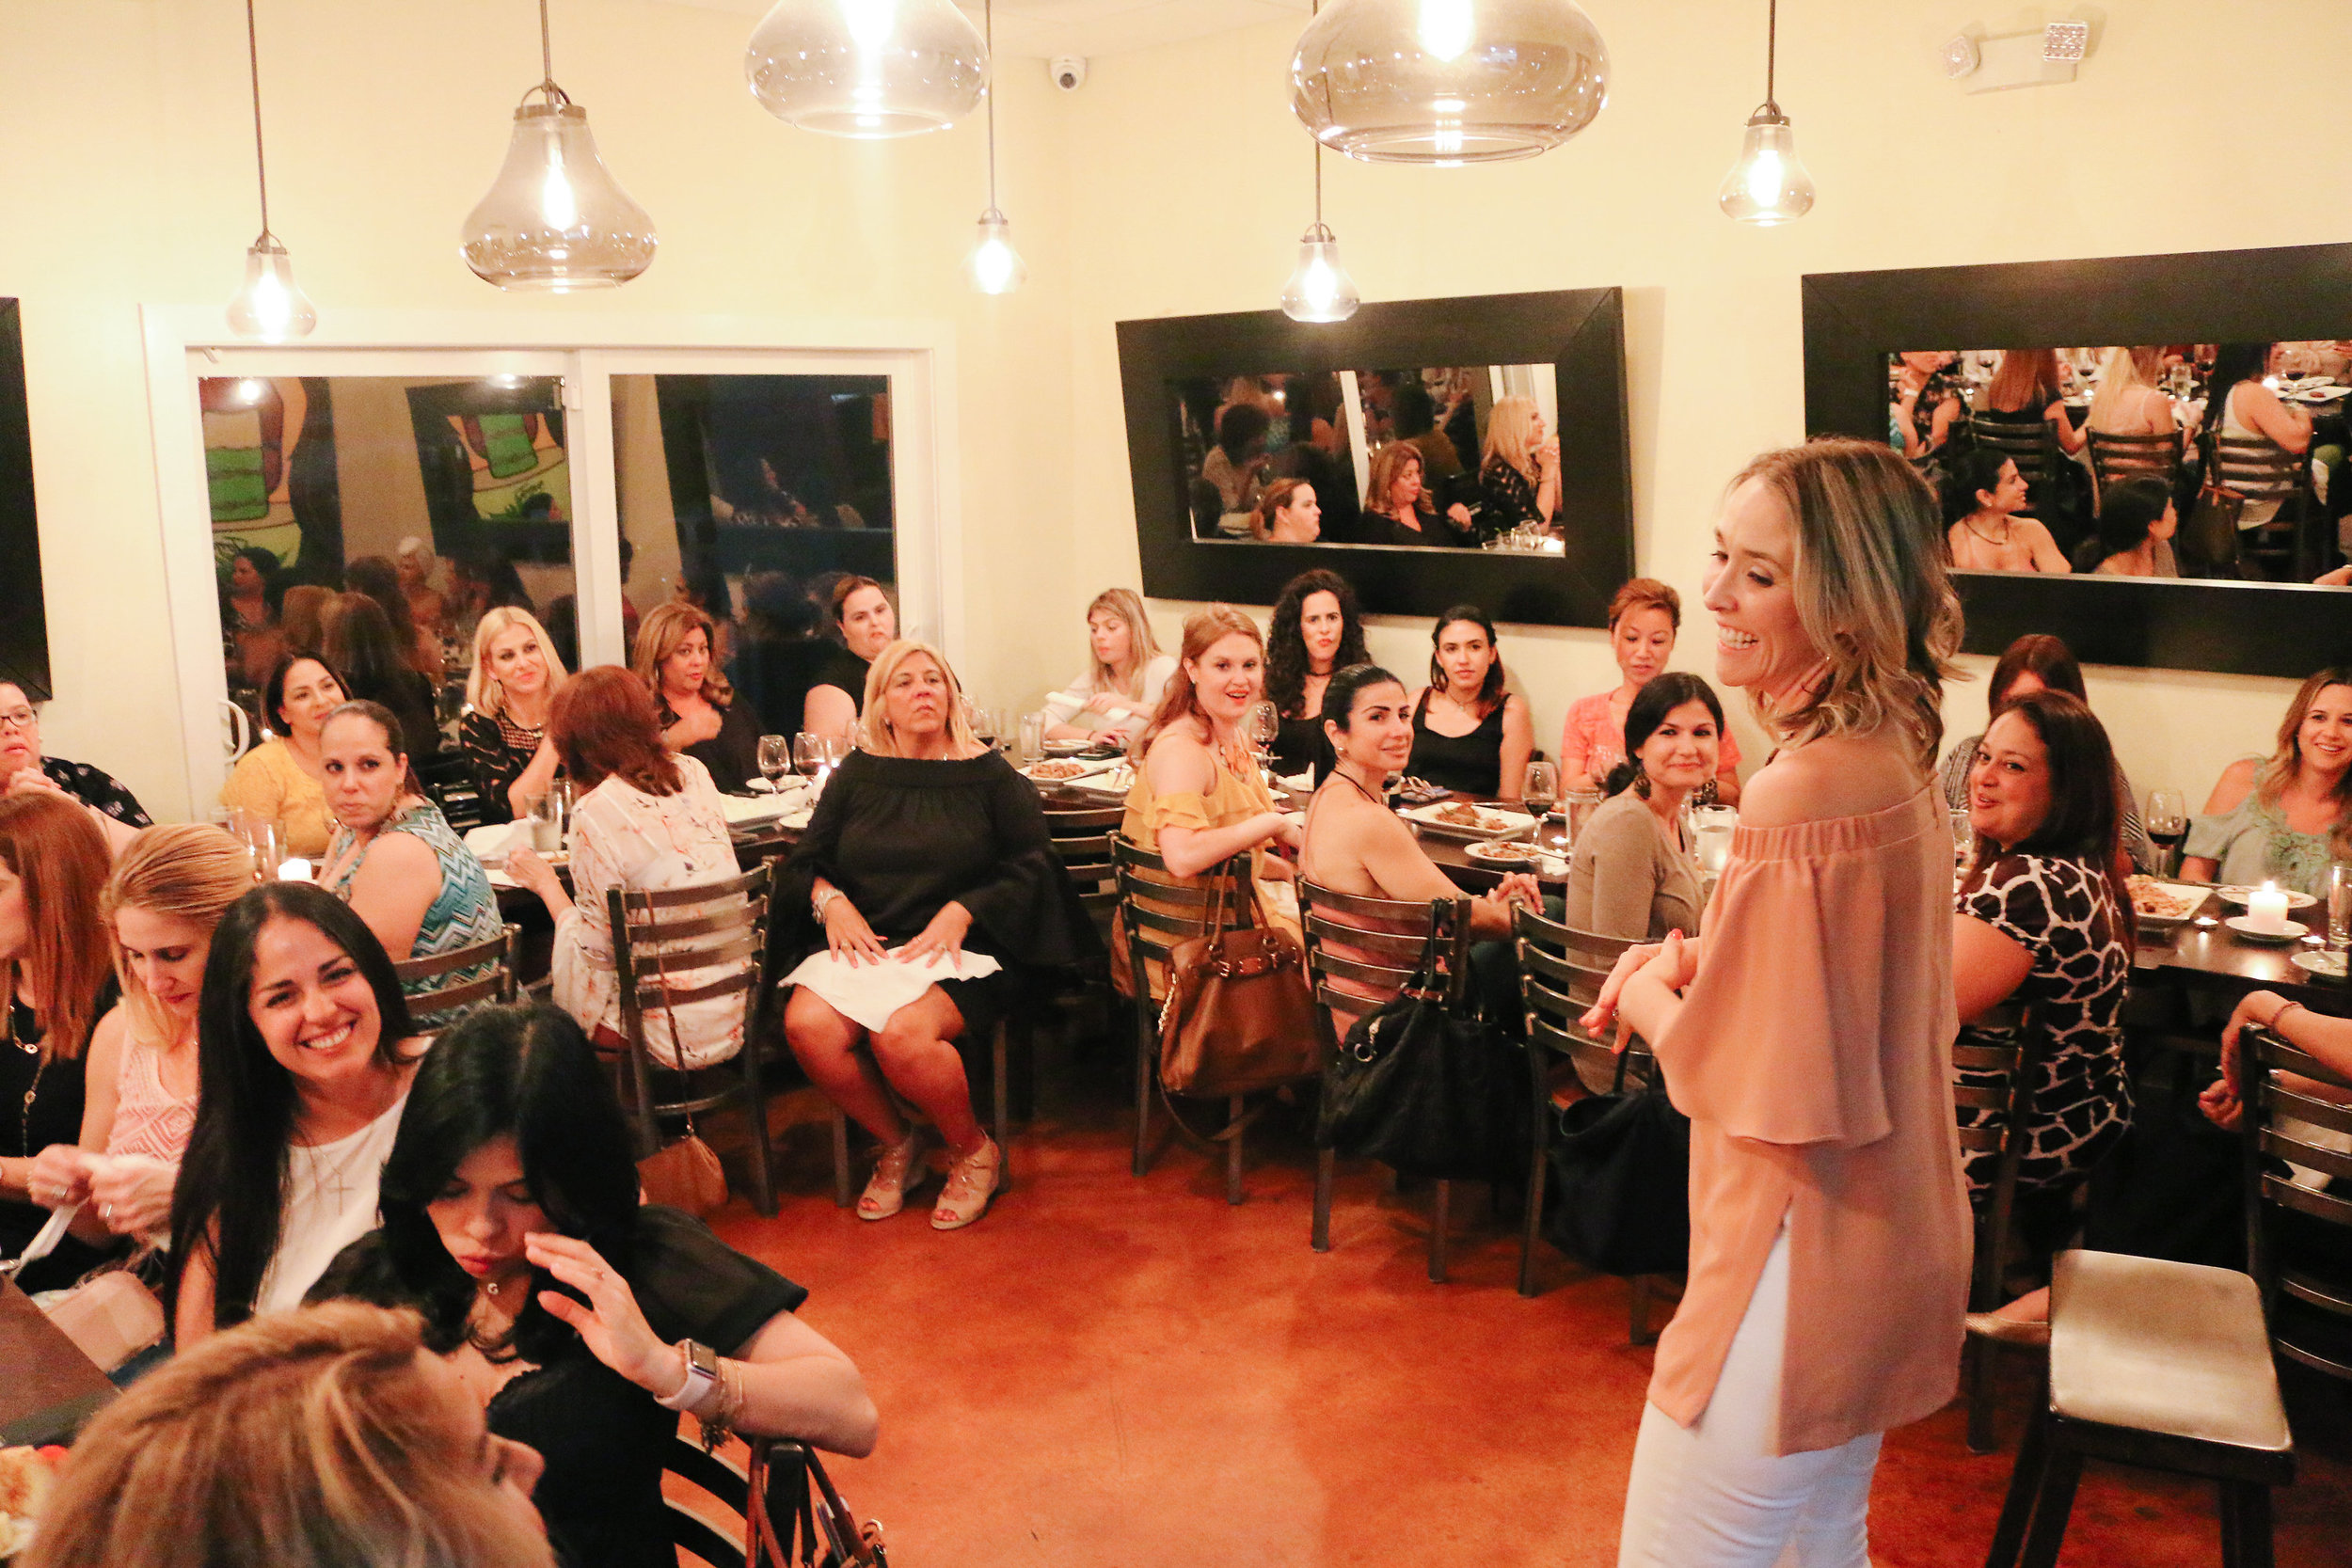 Women Who Wine_Uncorked Conversations_Off The Mile_Miami Wine Events_Wine Tasting Miami_73.jpg